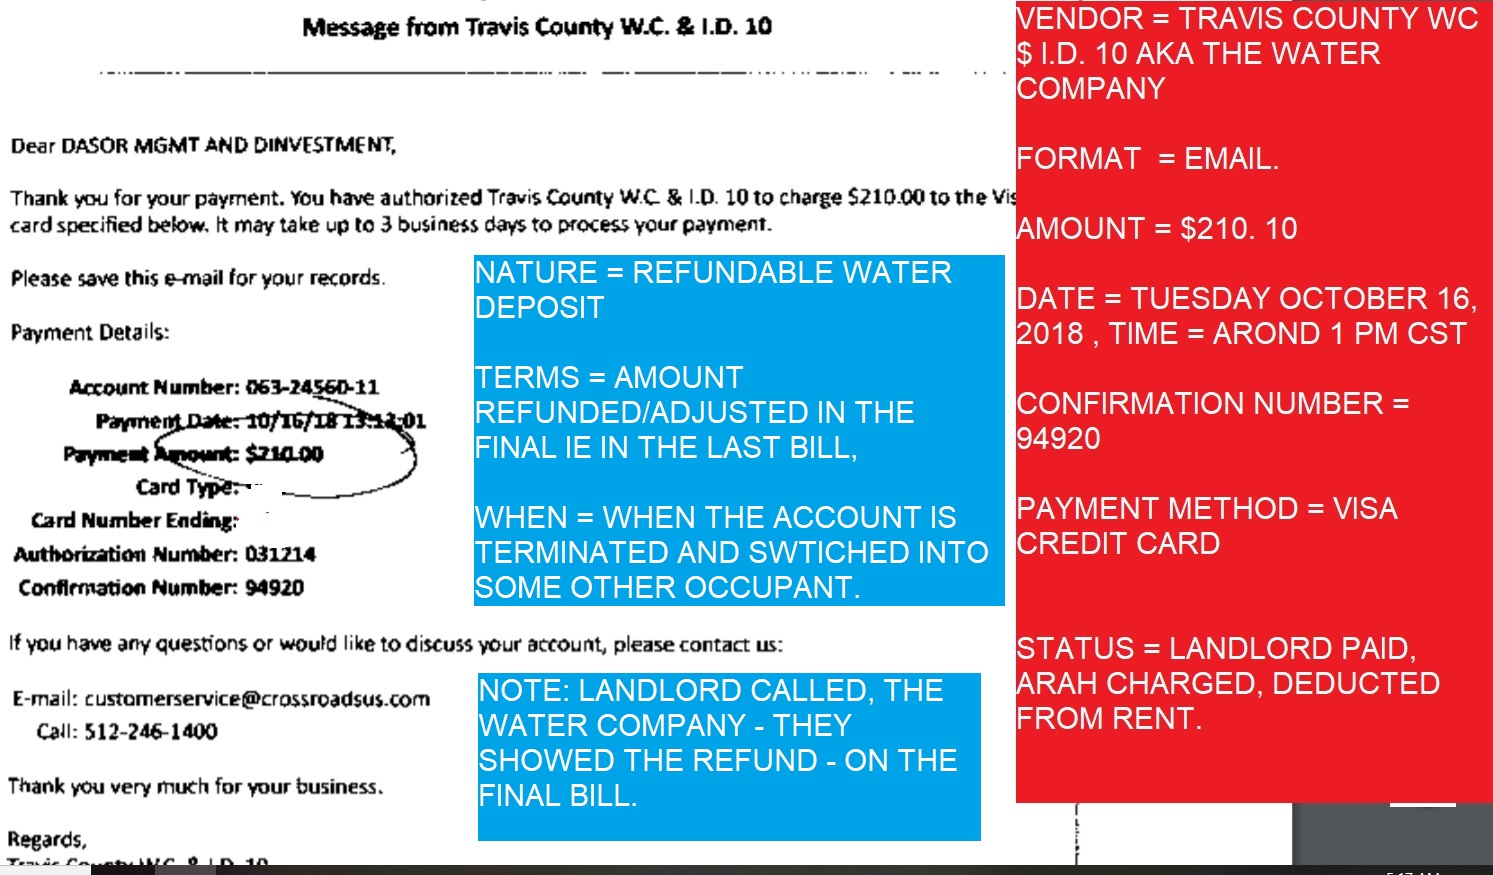 VENDOR = TRAVIS COUNTY WC $ I.D. 10 AKA THE WATER COMPANY THE REFUNDABLE $210.10 WATER CHARGE IS HERE